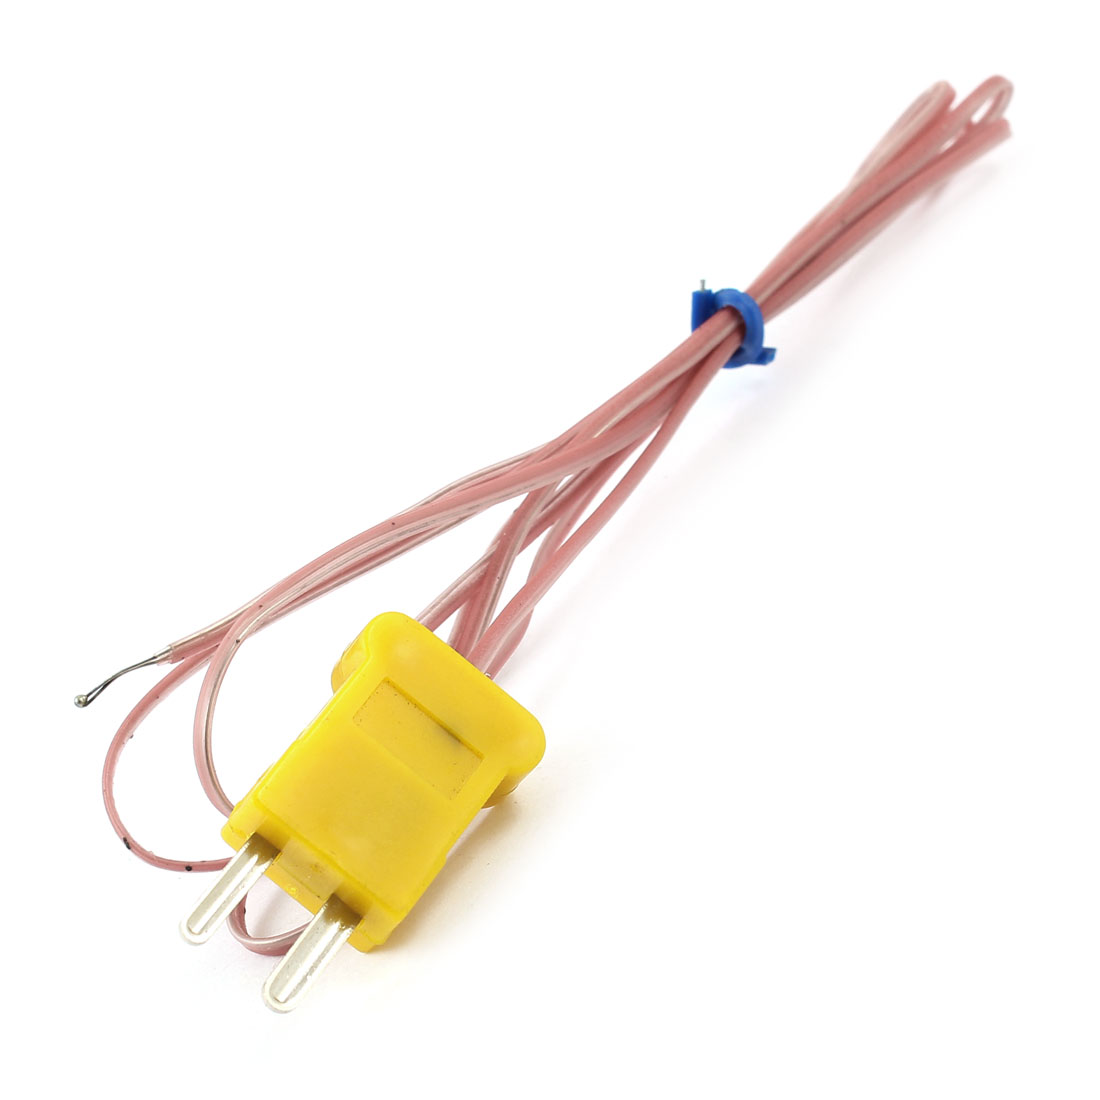 K Type Temperature Controller Wire Line Lead Measuring Thermocouple Probe 0-400C 95cm 3Ft Cable